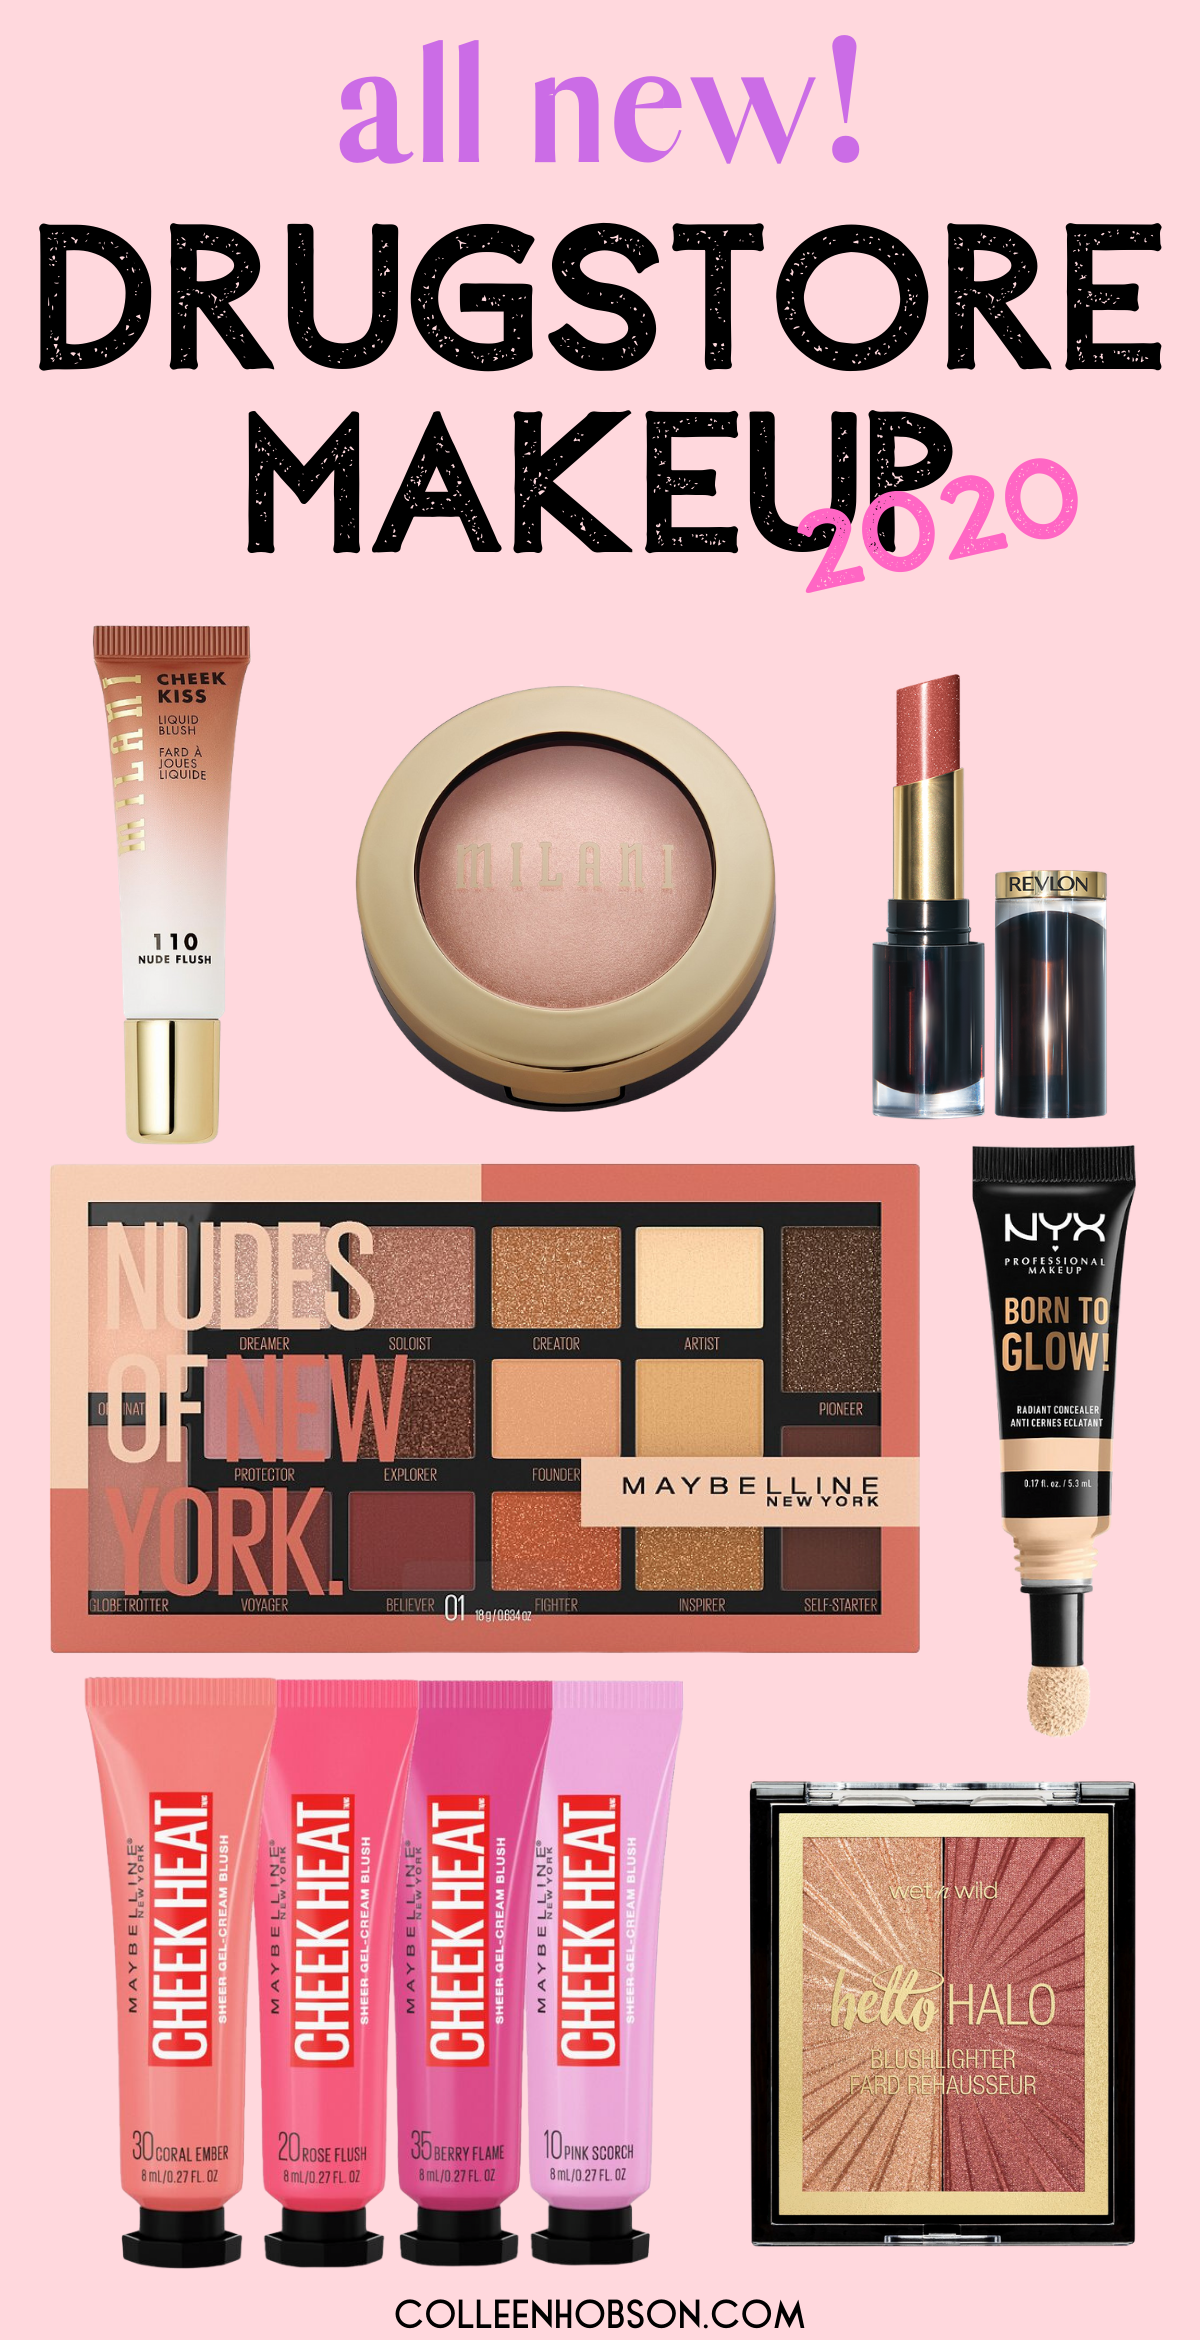 All New Spring 2020 Drugstore Makeup Start off the new year right with these brand new drugstore makeup gems